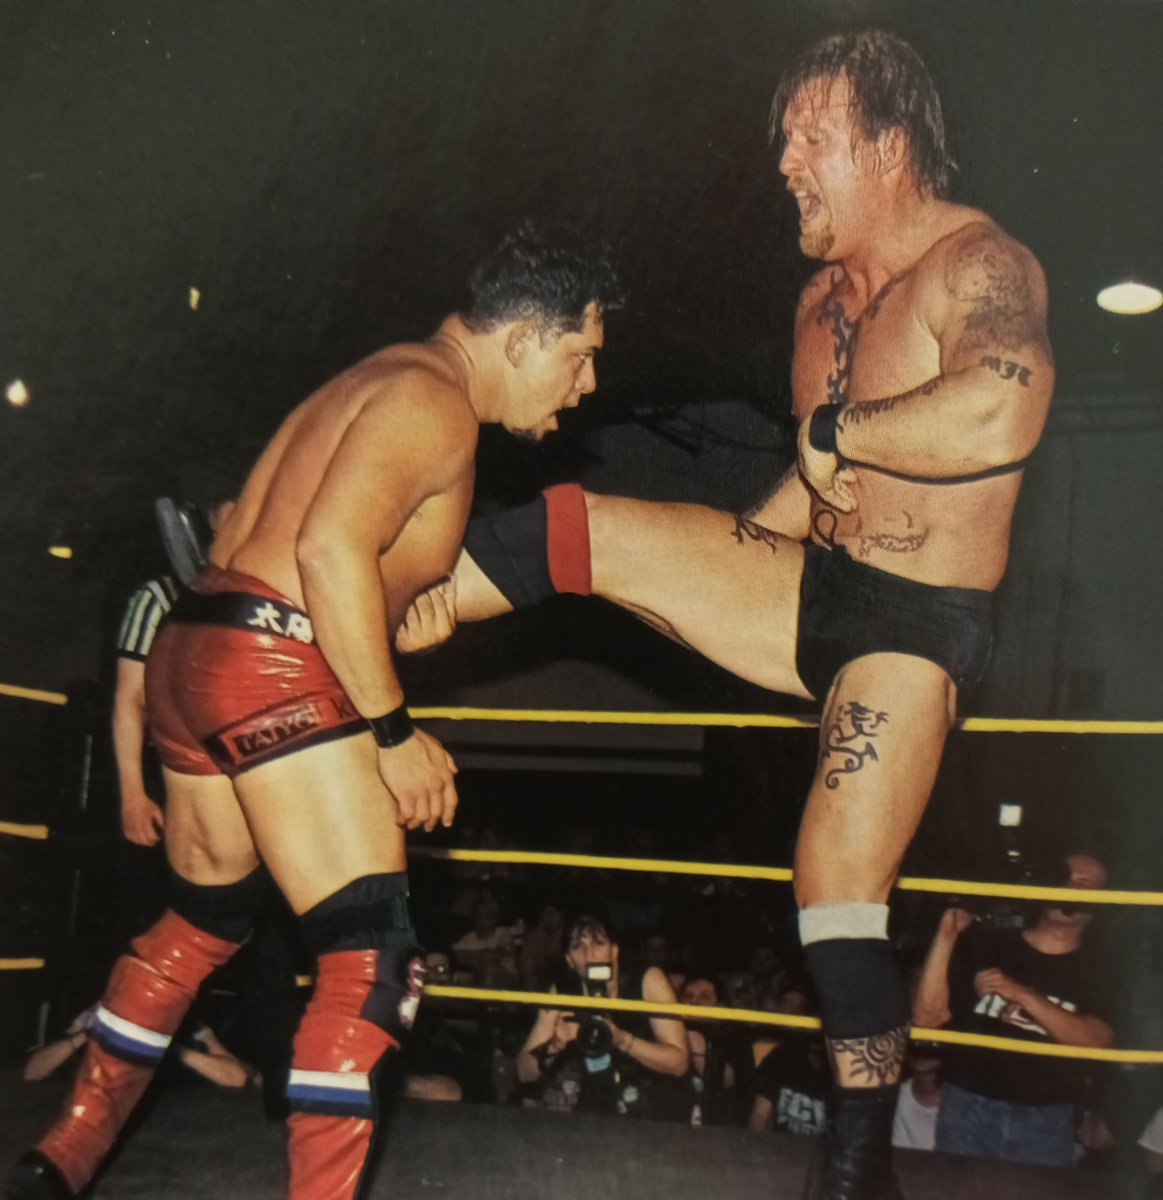 The Wall(the late Jerry Tuite),battling Taiyo Kea in the Quarter Final round of the Major League Wrestling World Heavyweight Championship tournament in Philadelphia,PA back on June 15,2002 pic.twitter.com/TMiDL2wZ13